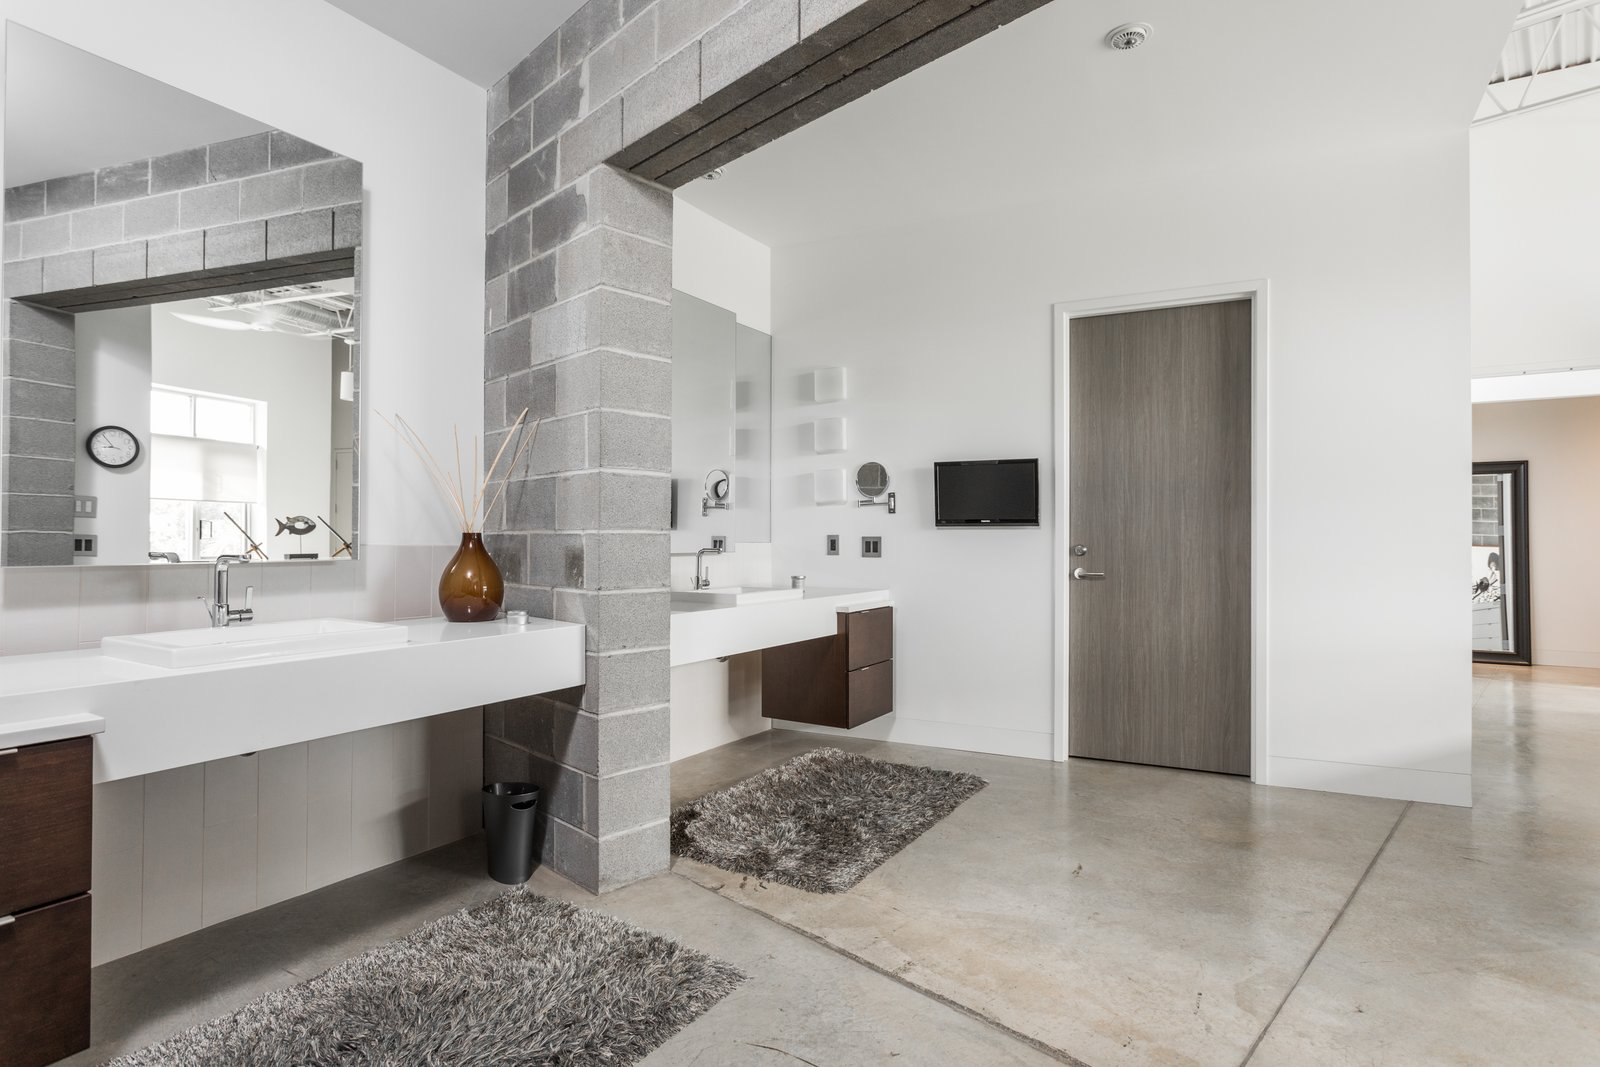 Bath Room, Concrete Floor, and Drop In Sink  Photo 11 of 12 in A Converted Ink Factory in Downtown Indianapolis Asks $2.6M